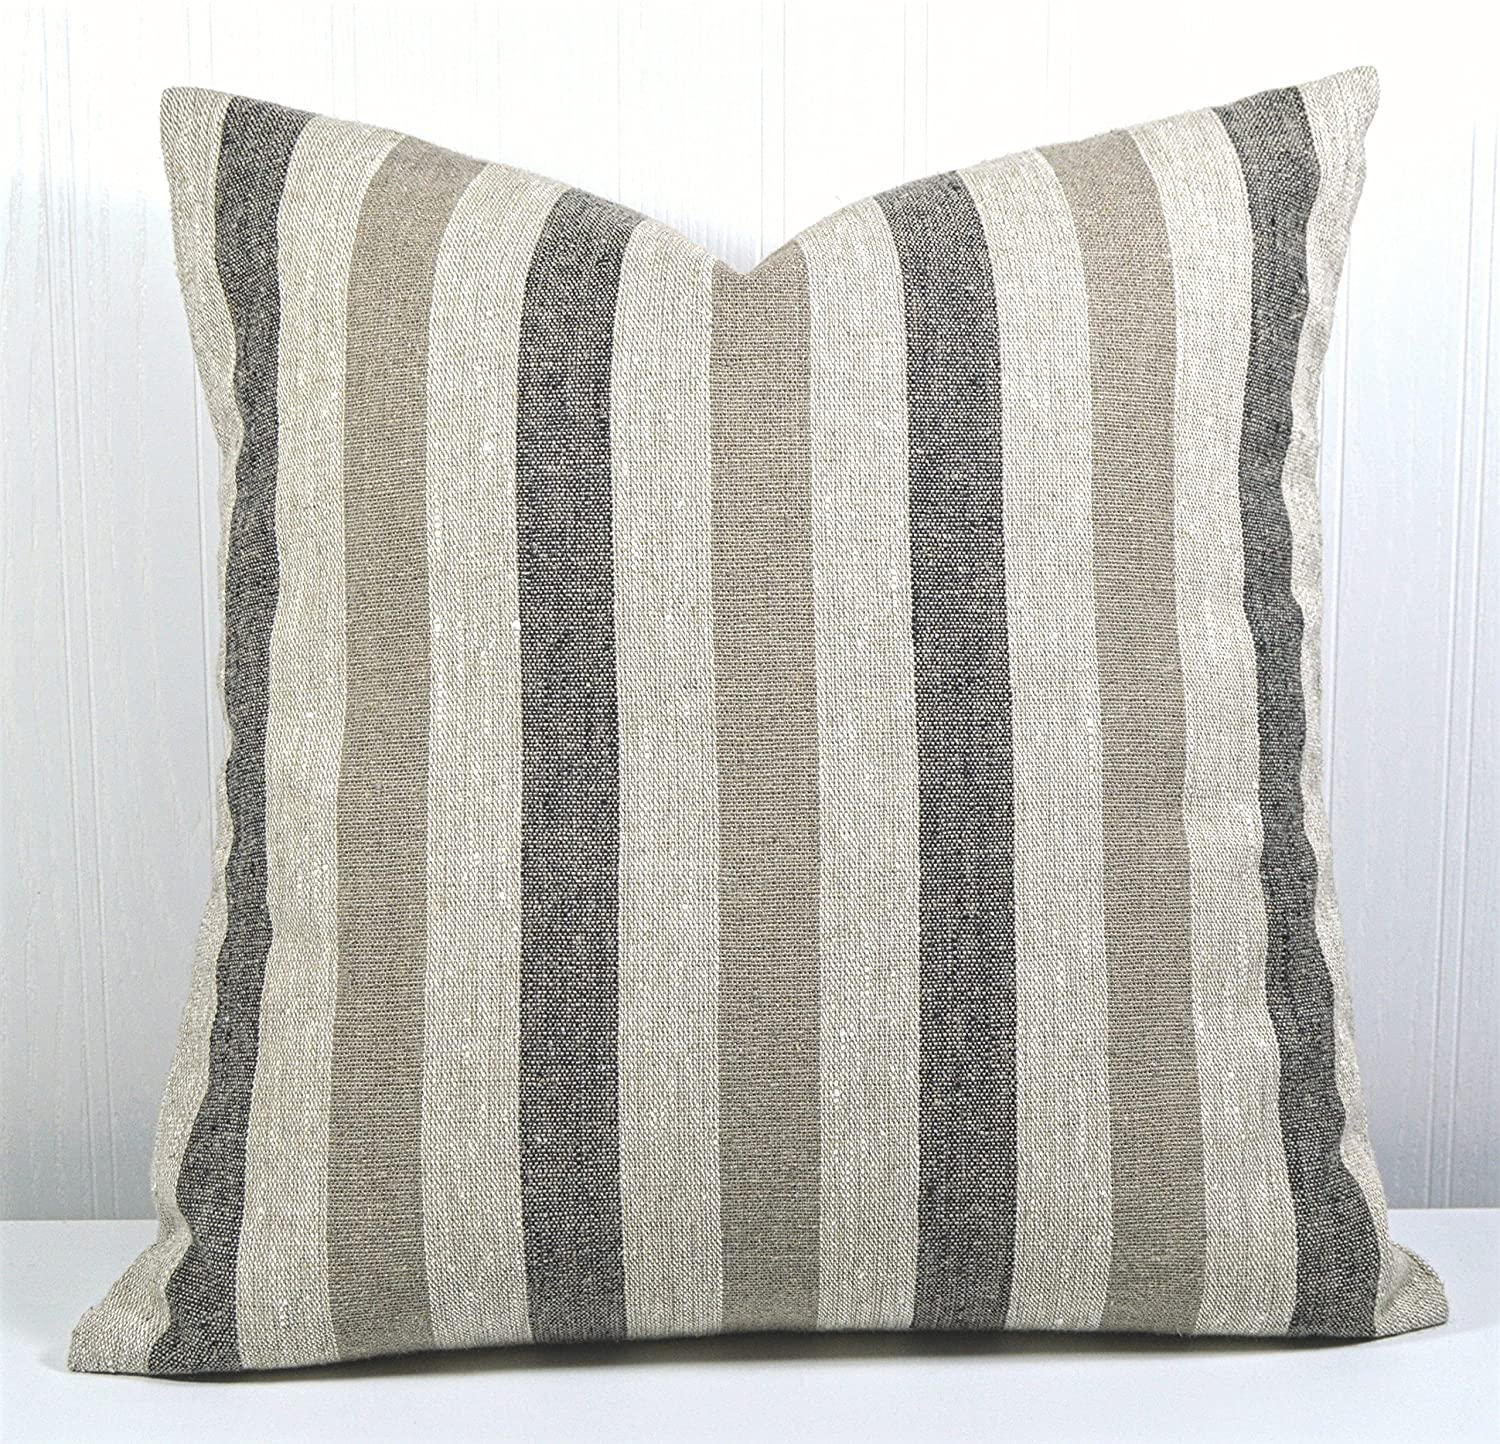 Pillow Cover 18x18 Farmhouse Linen Natural, Black and Tan Stripes